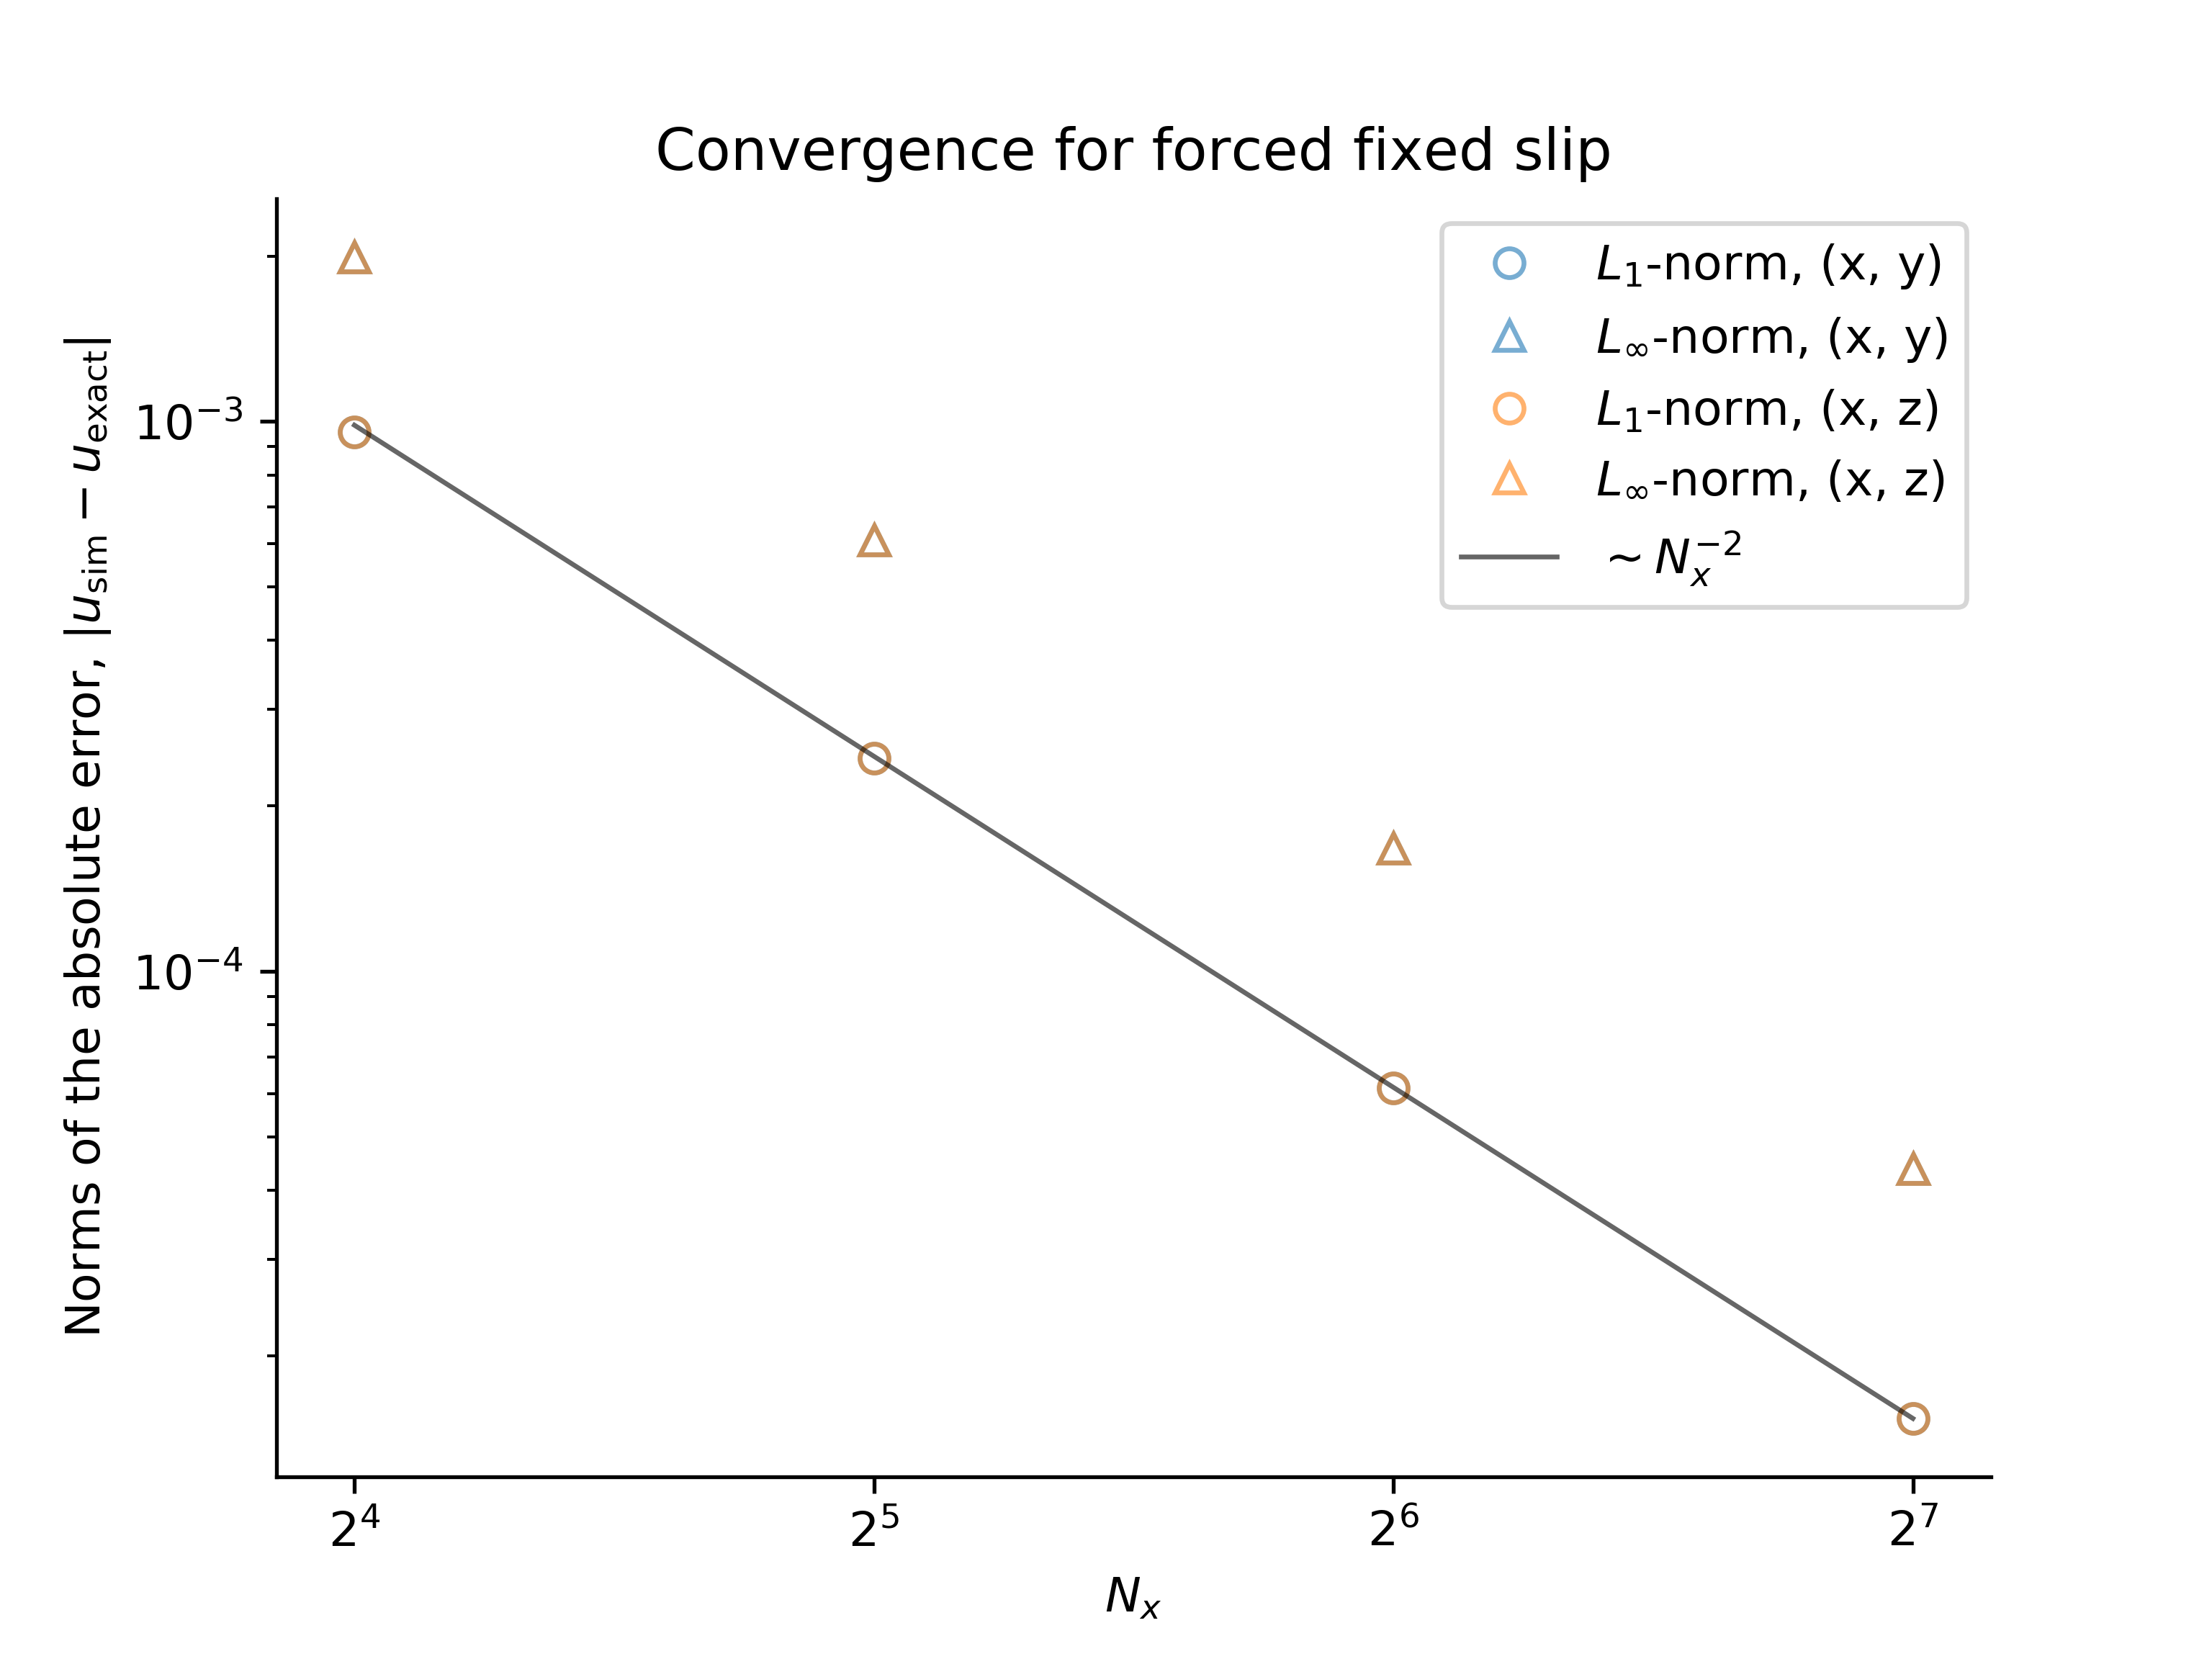 Forced fixed slip convergence